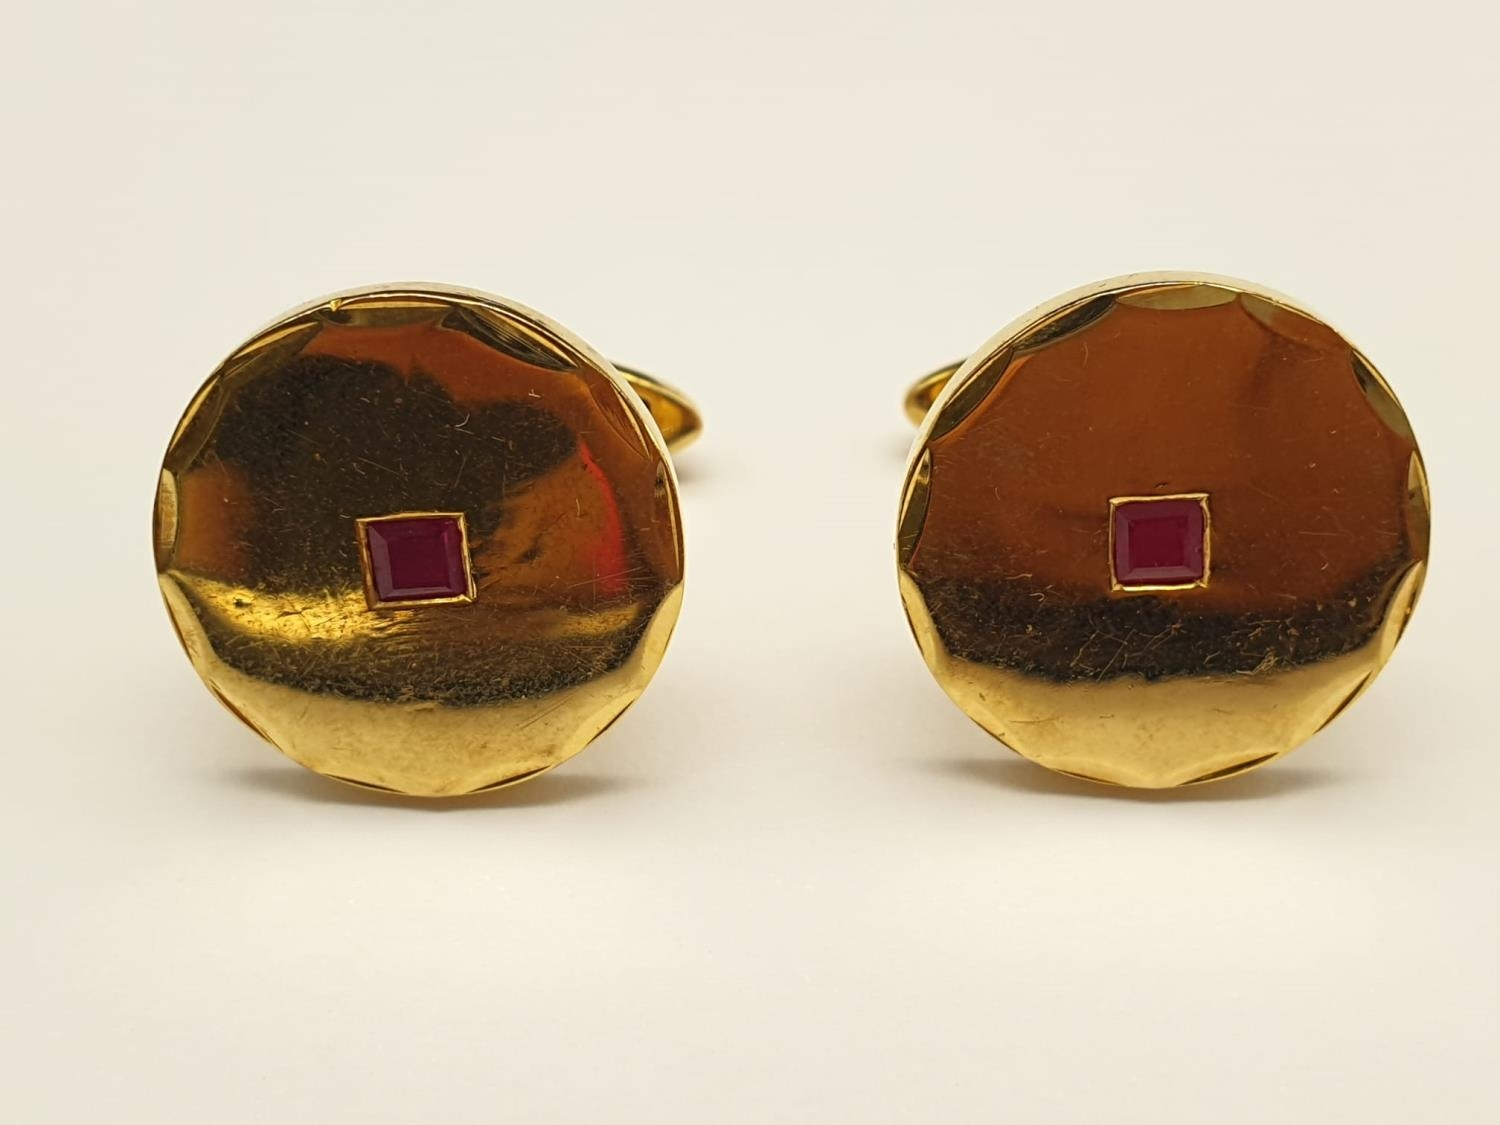 A Pair of 14k Yellow Gold and Ruby Cufflinks. 11.83g